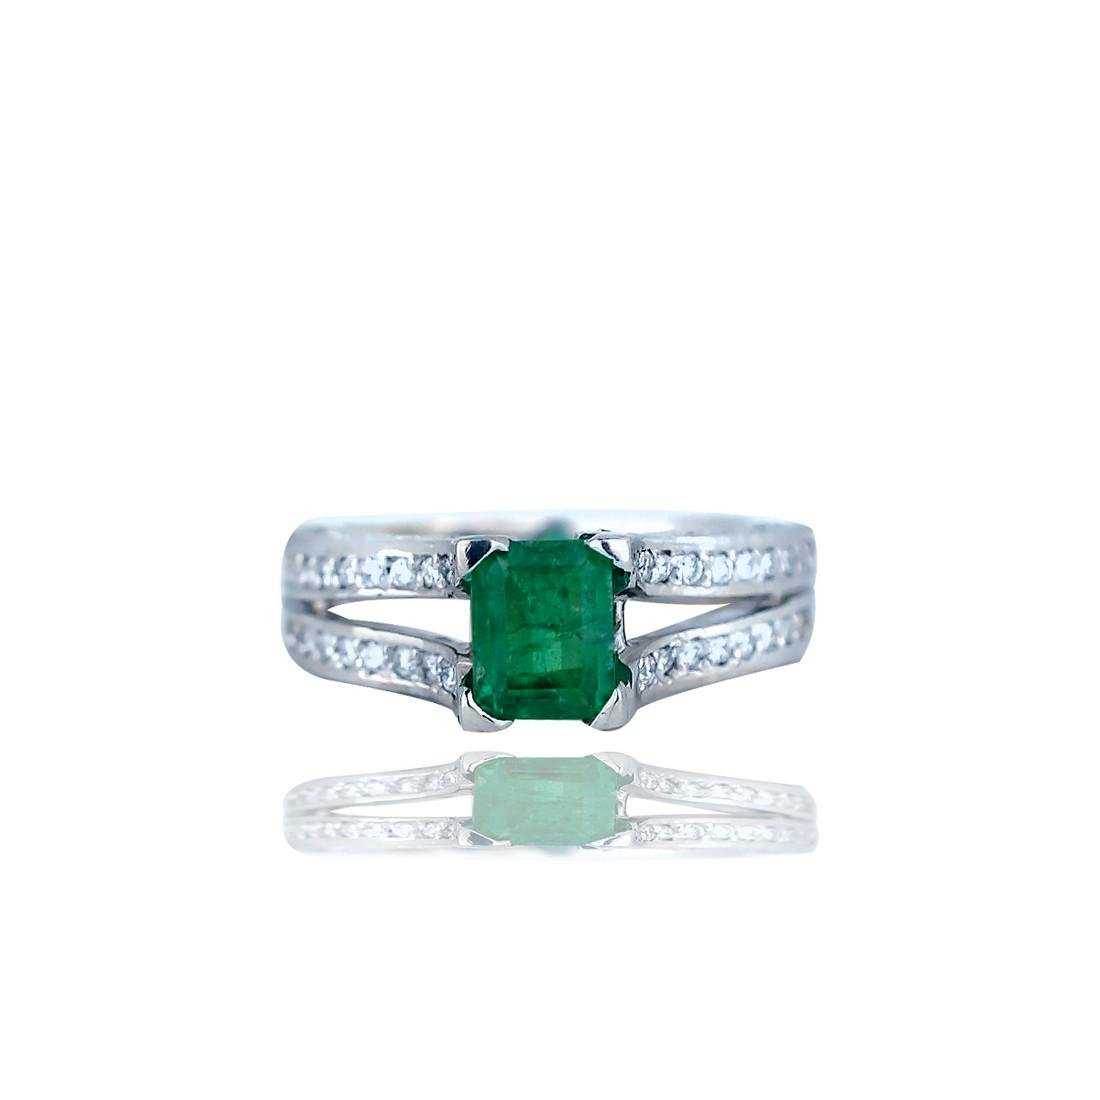 Radiant Emerald and Diamond, 4.26 TCW Double shanked,